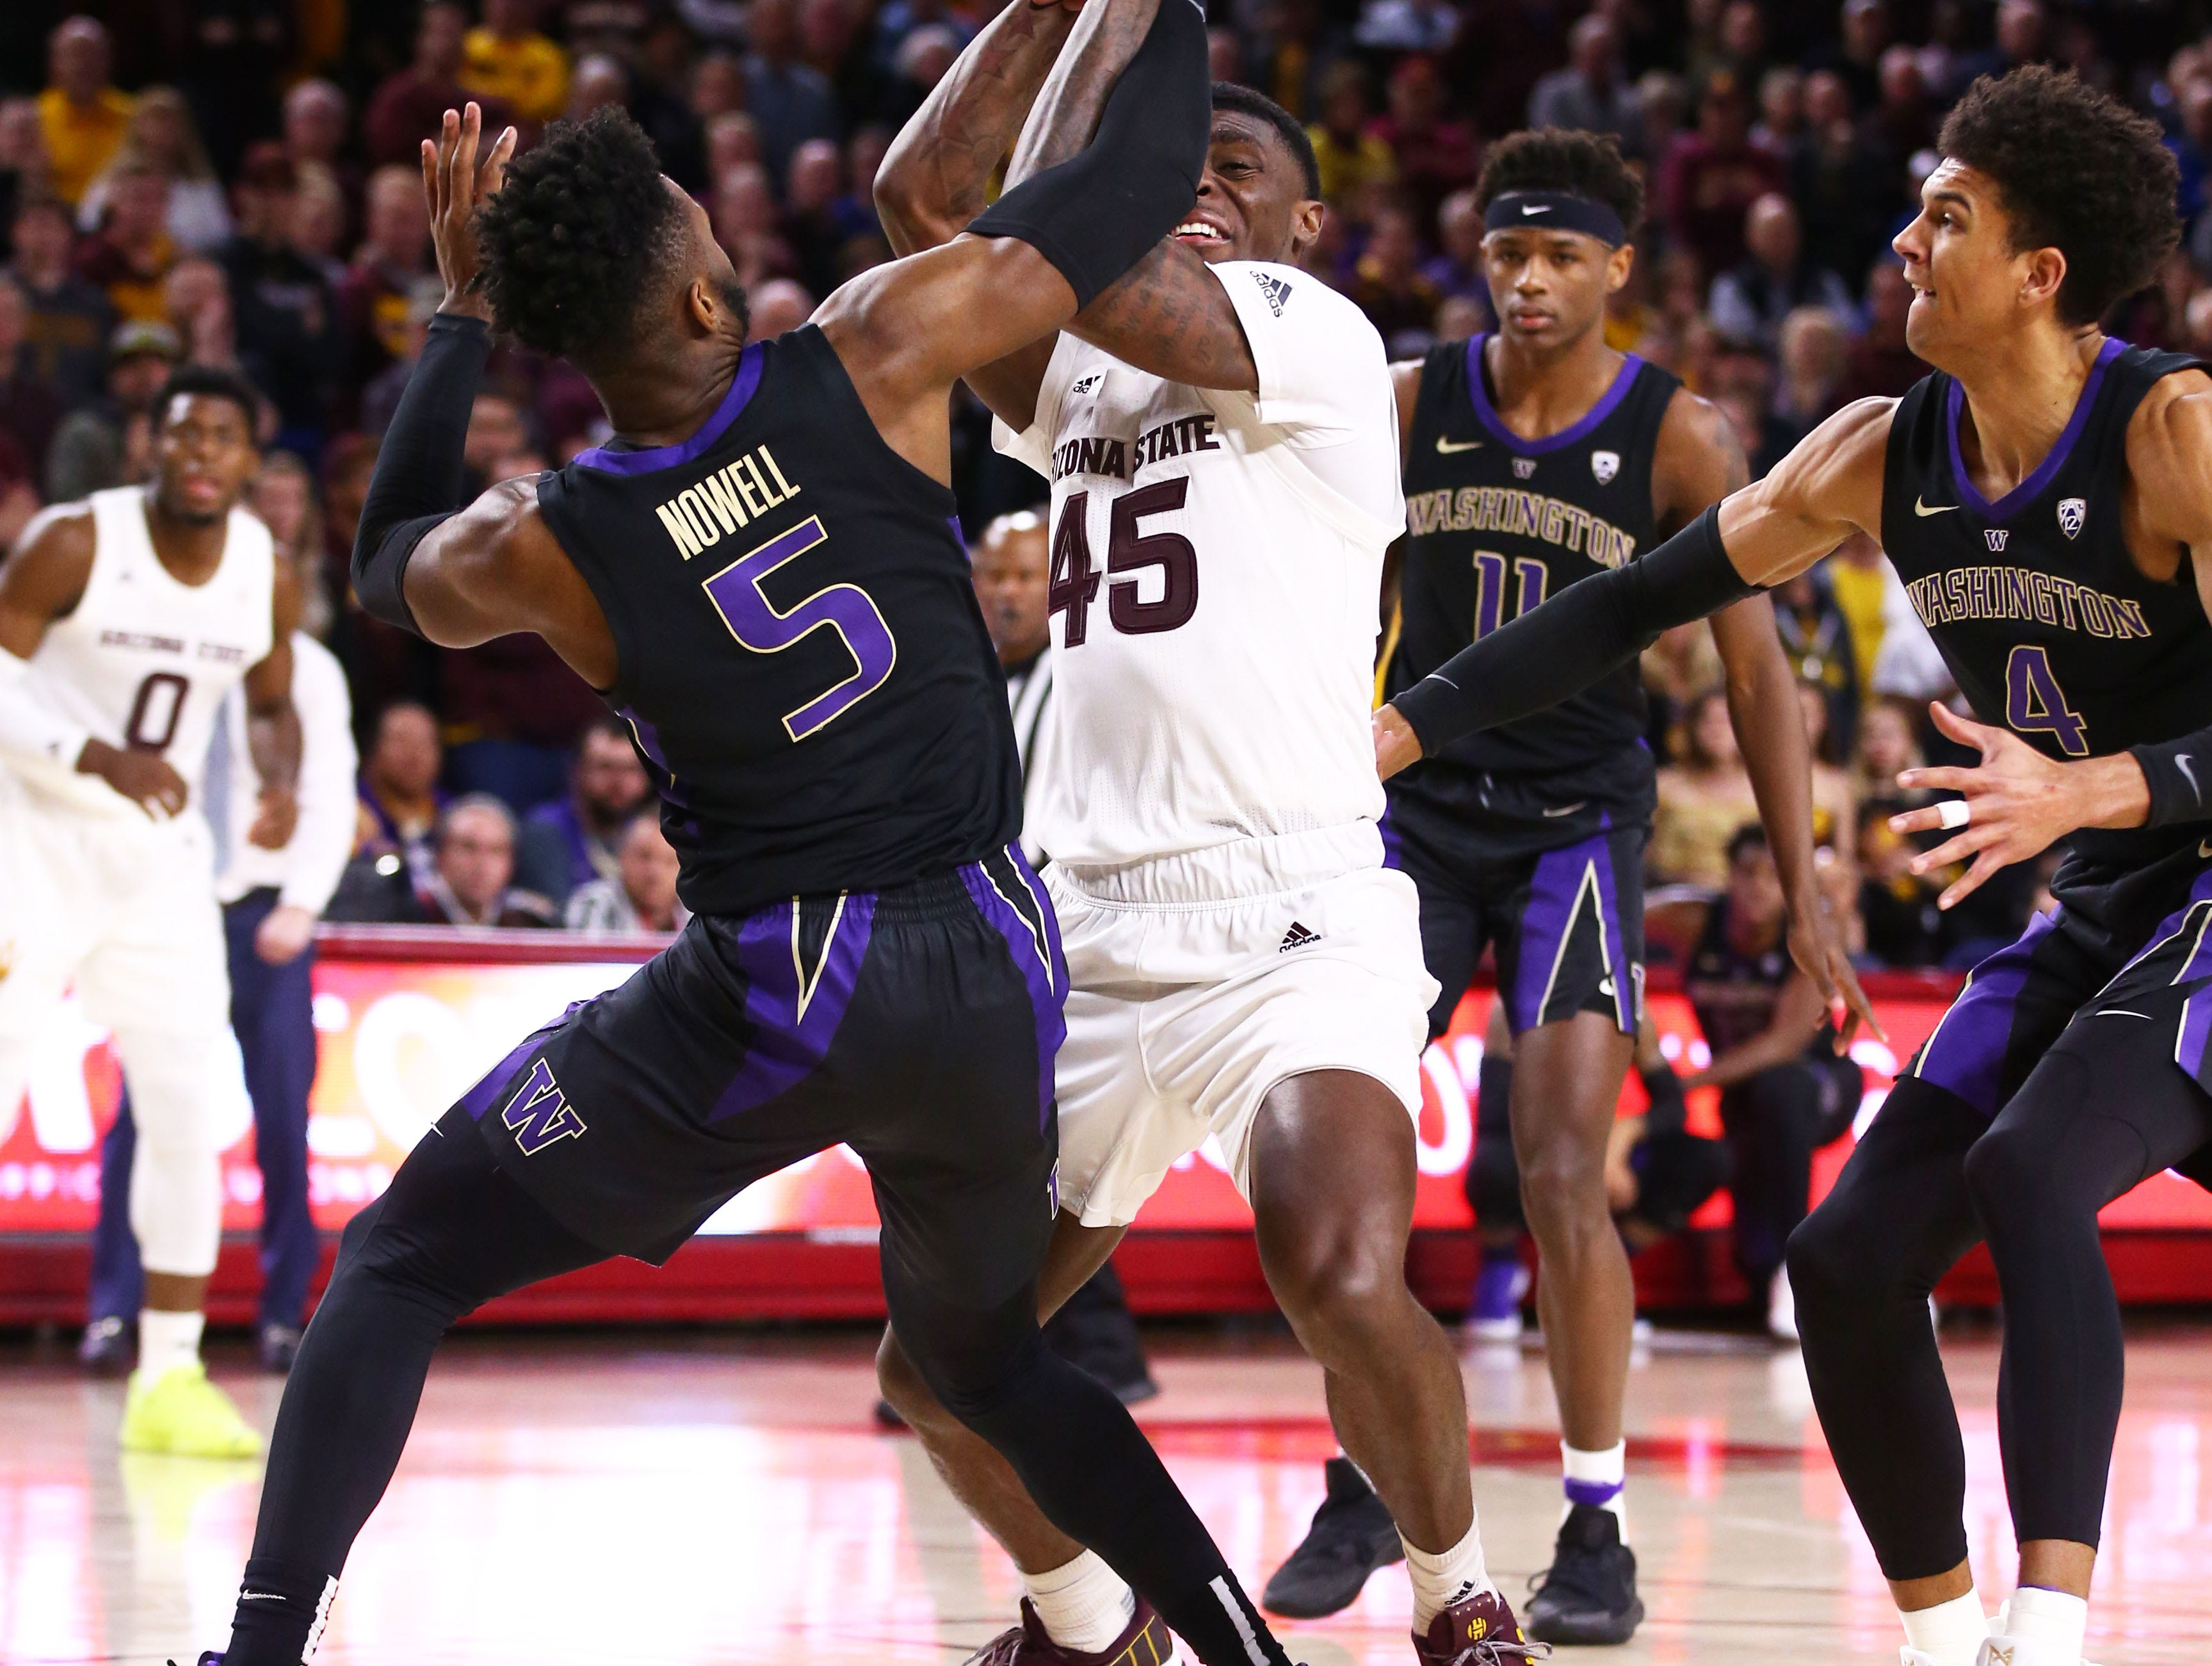 Arizona State Sun Devils forward Zylan Cheatham is fouled by Washington Huskies guard Jaylen Nowell in the second half on Feb. 9 at Wells Fargo Arena in Tempe.